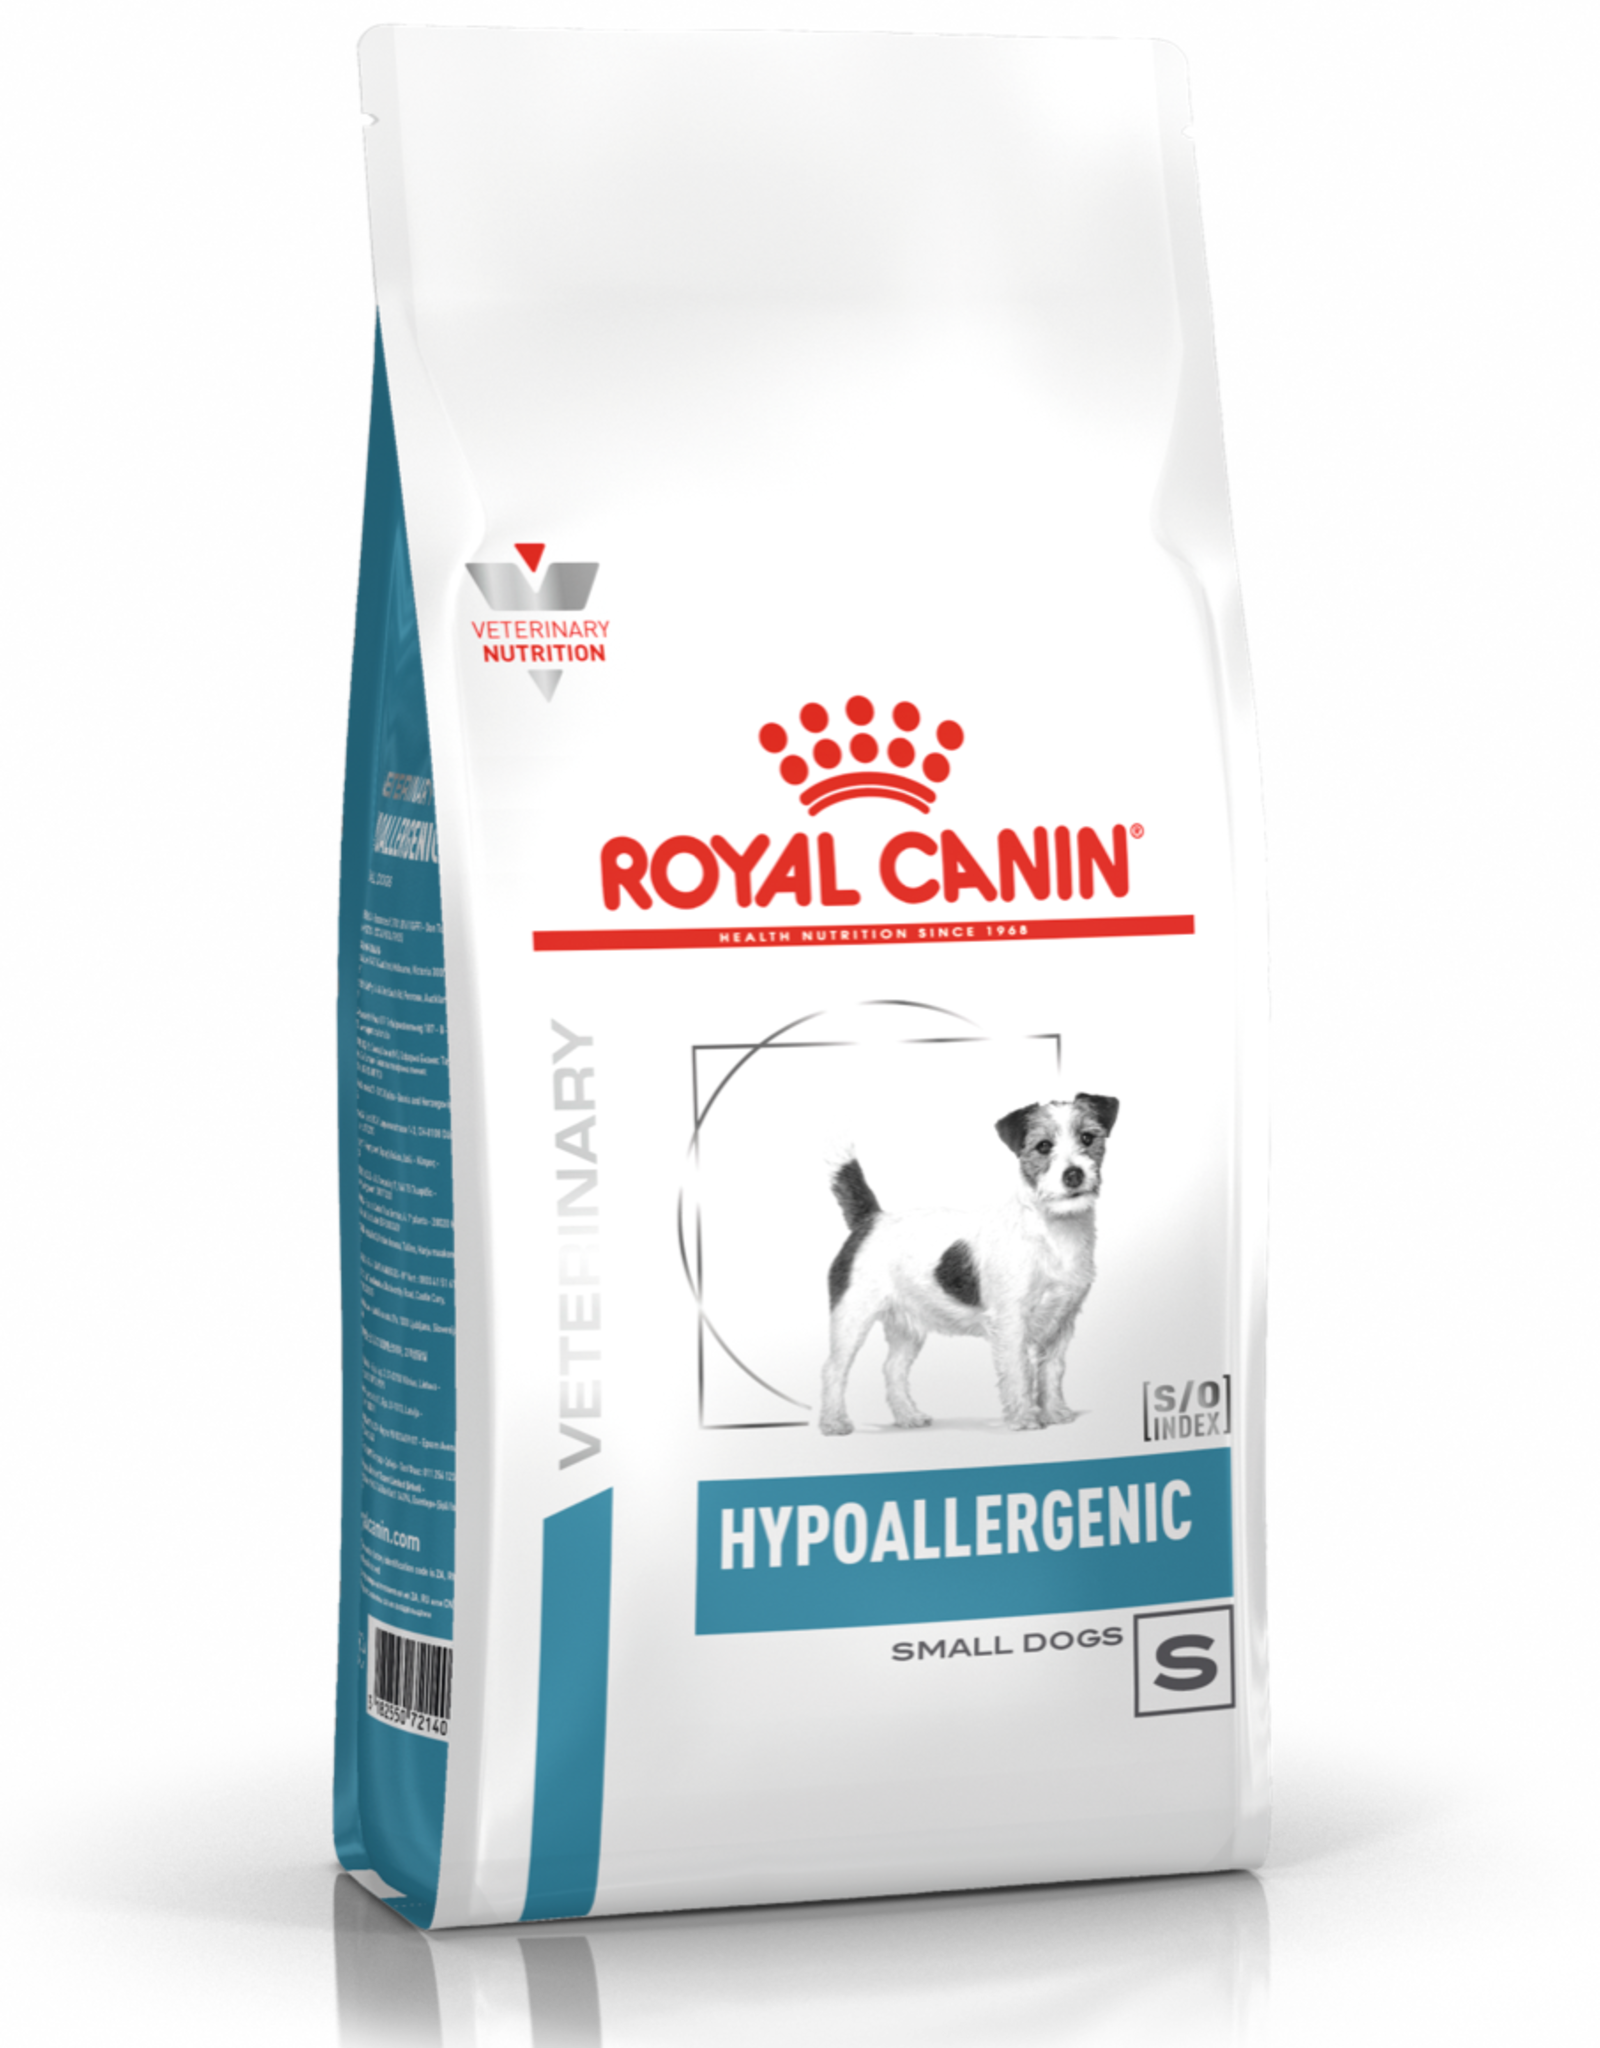 Royal Canin Royal Canin Hypoallergenic Small Hond 1kg